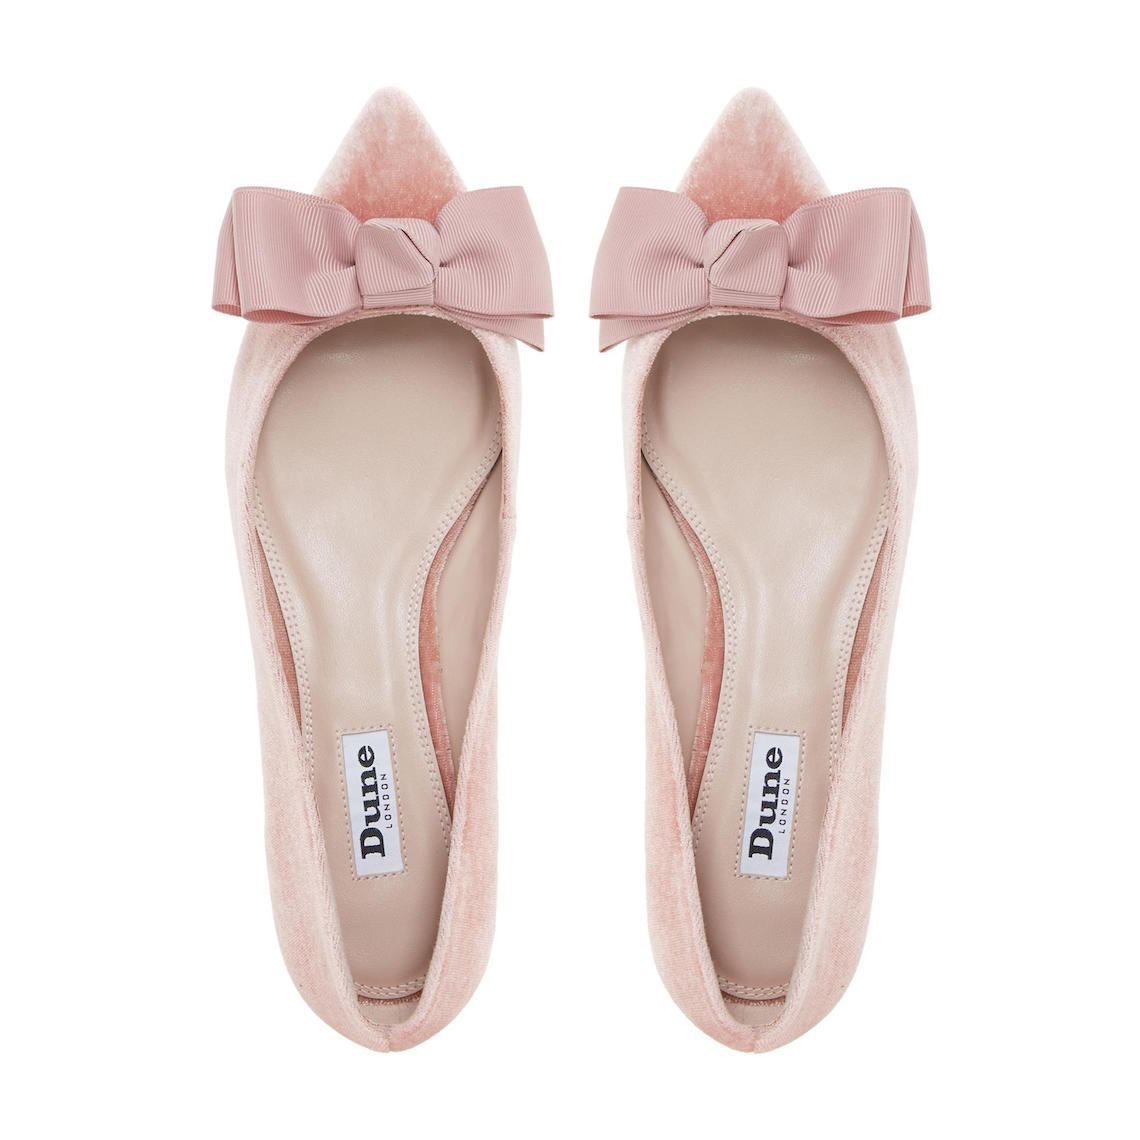 Just Chic 10 Are Flat Heels As Shoesthat N0nywovm8 Wedding IgvY76fbmy